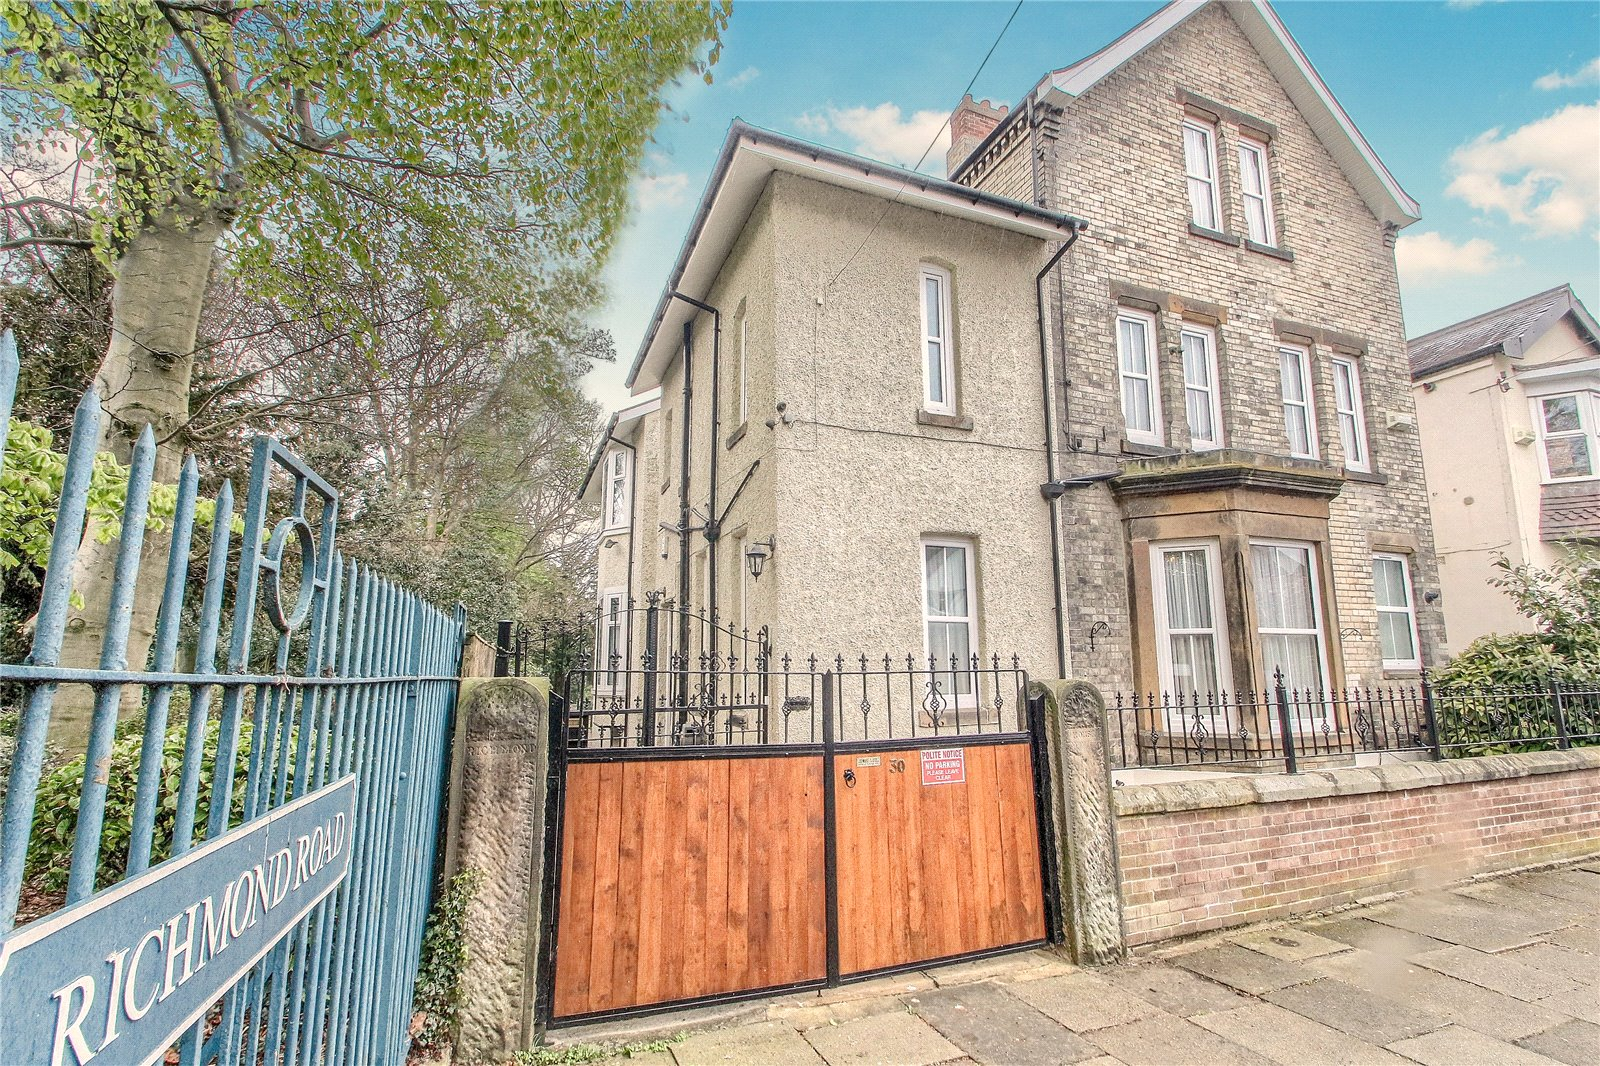 7 bed house for sale in Richmond Road, Stockton-on-Tees  - Property Image 26